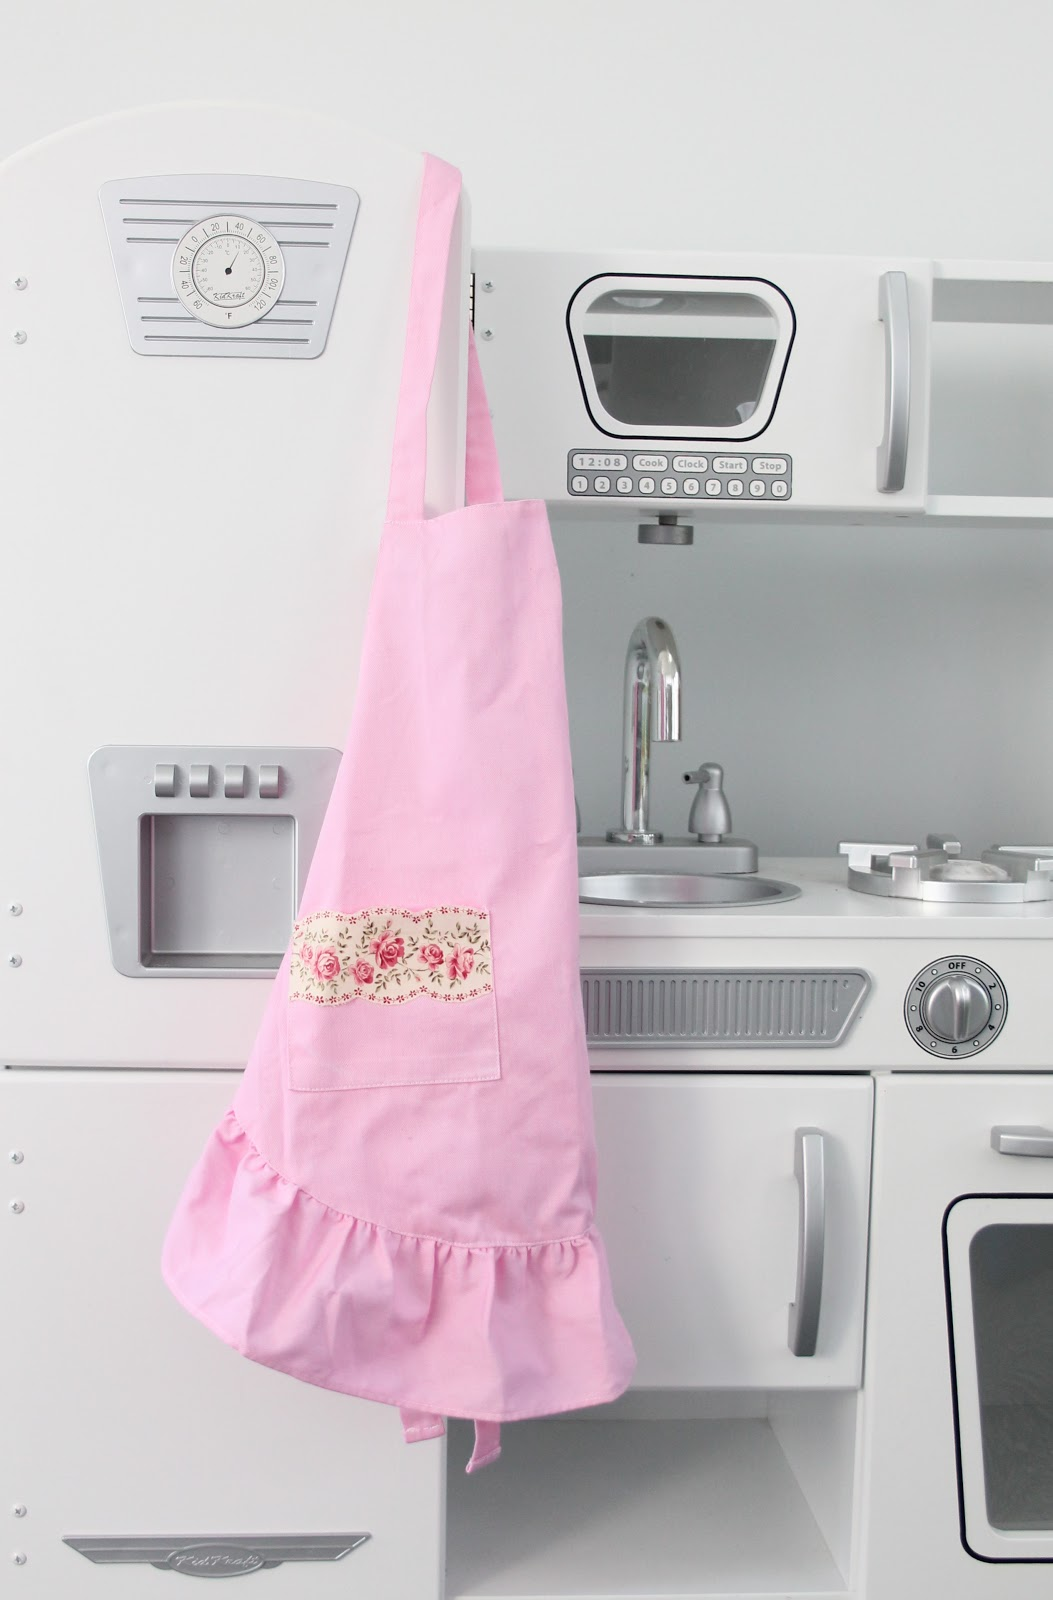 White apron hobby lobby - I Purchased Basic White Ruffled Child Size Aprons For Under 5 Each At Hobby Lobby Using Just A 1 4 Bottle Of Petal Pink Rit Dye I Dyed Them Pink In The